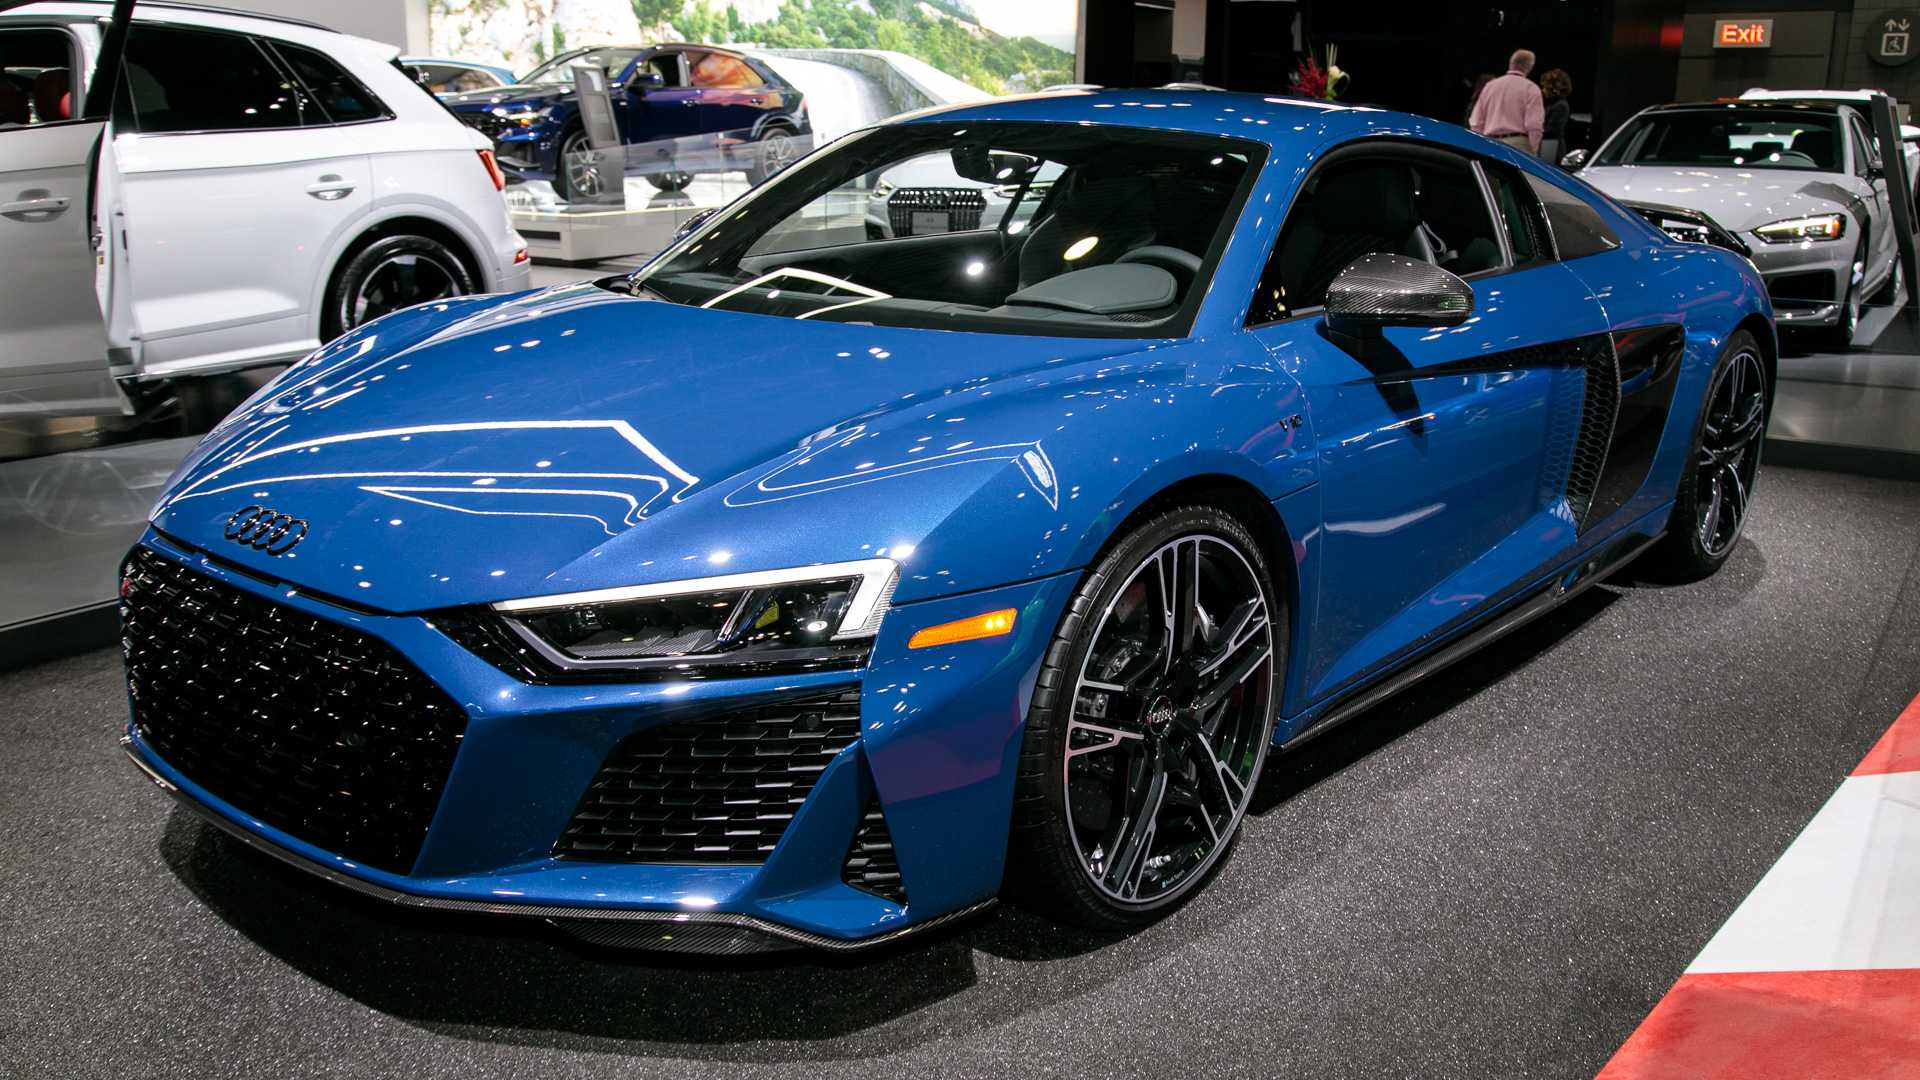 74 All New Pictures Of 2020 Audi R8 Pricing with Pictures Of 2020 Audi R8